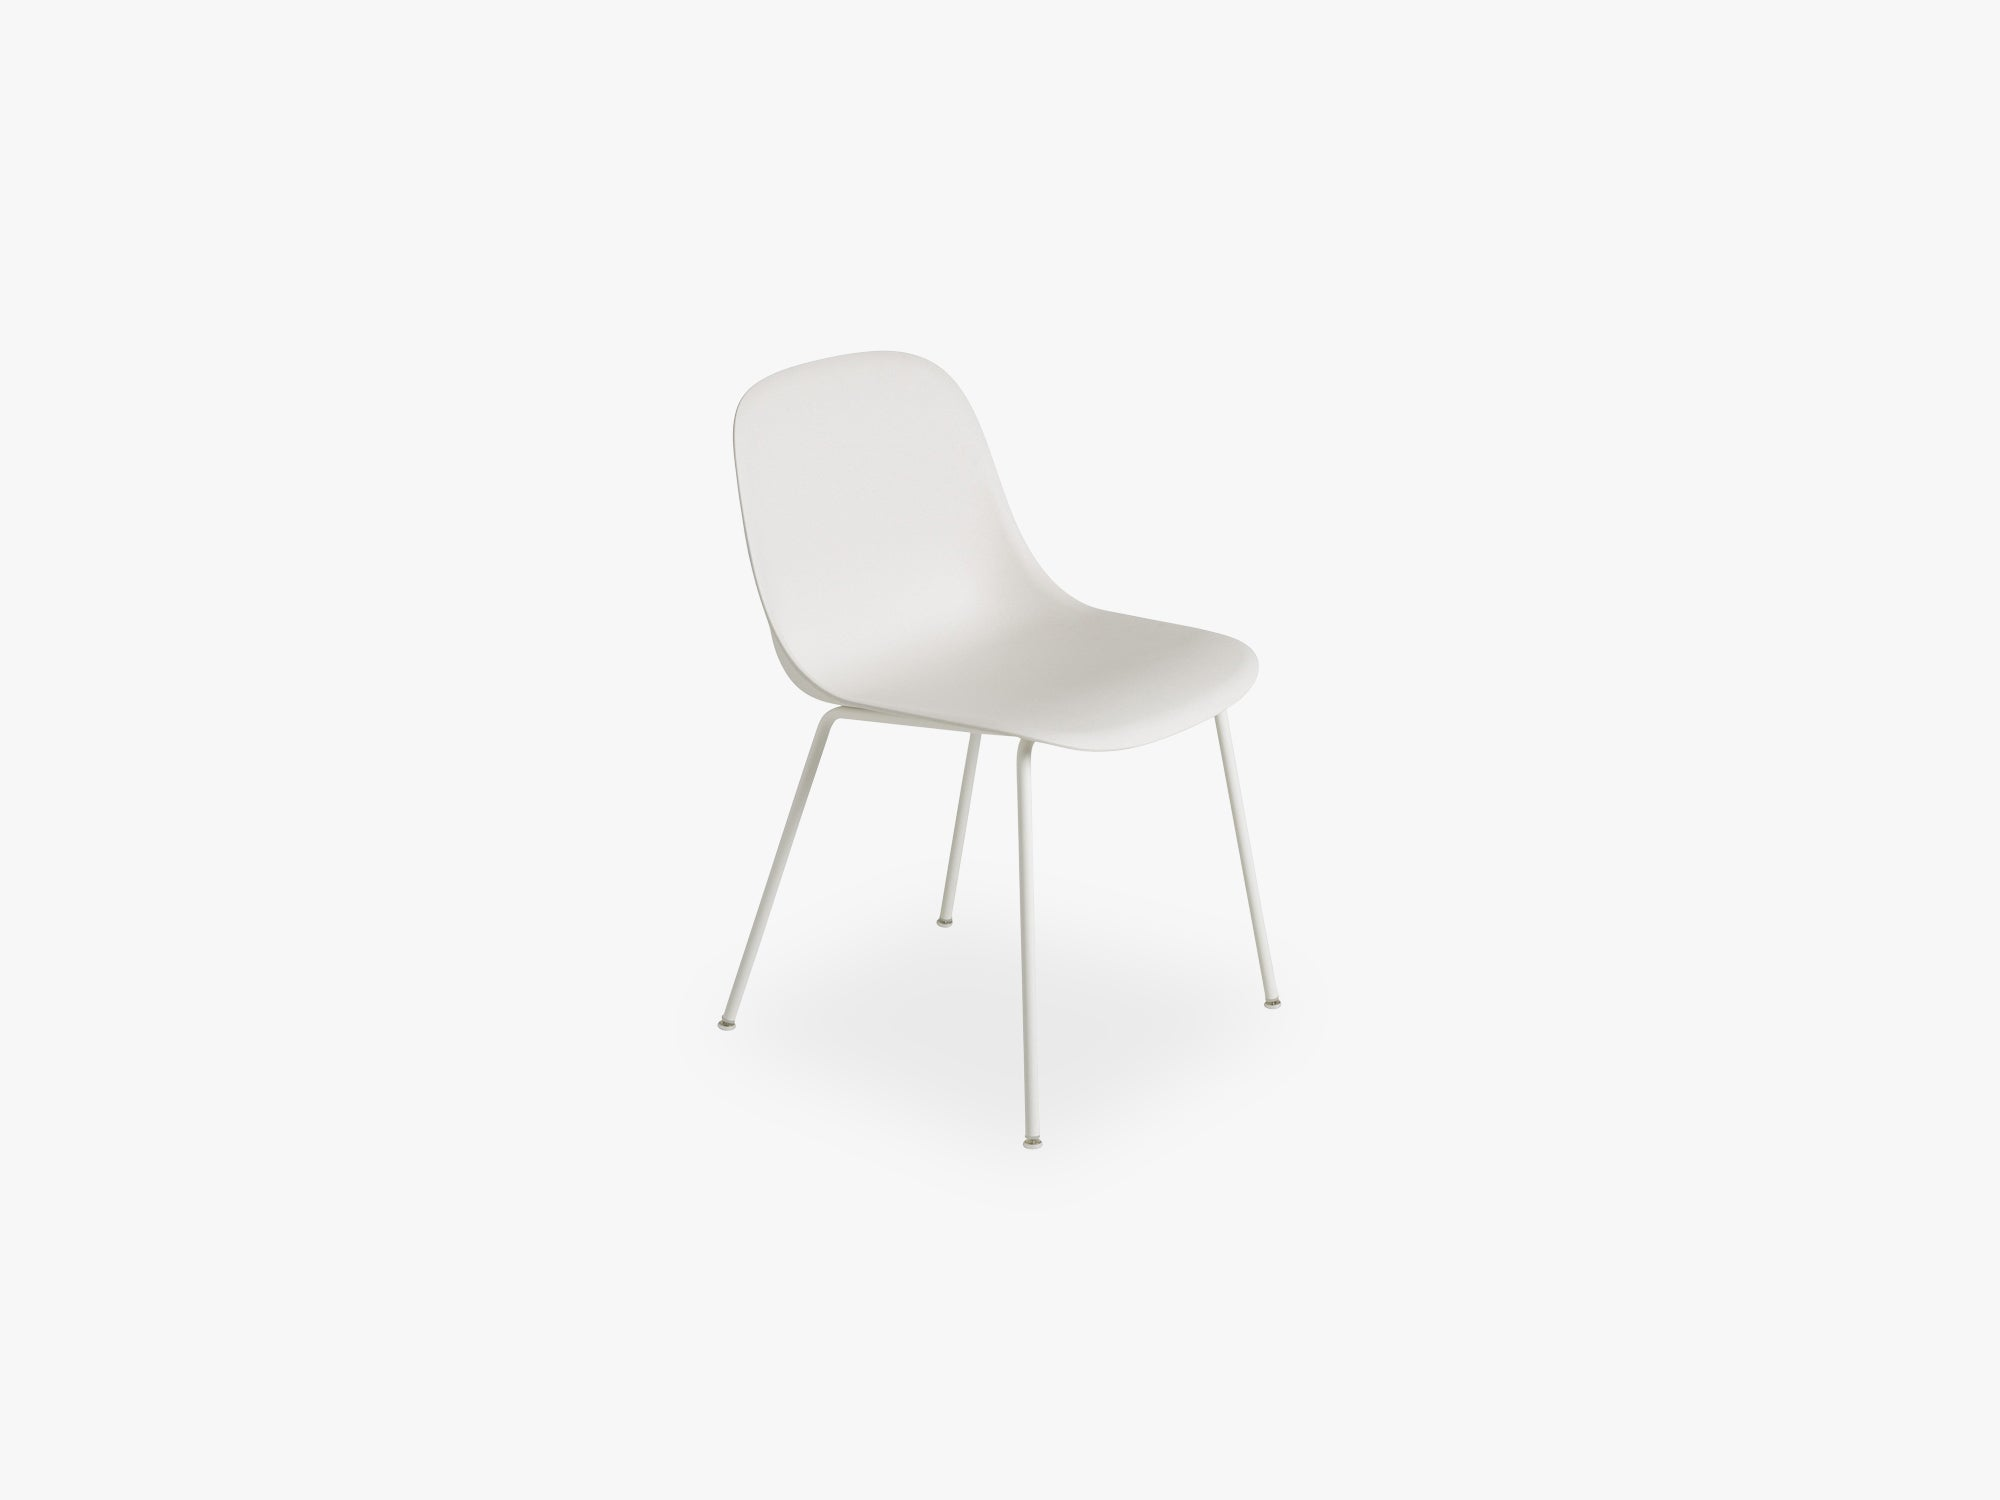 Fiber Side Chair - Tube Base - Normal Shell, Natural White/White fra Muuto